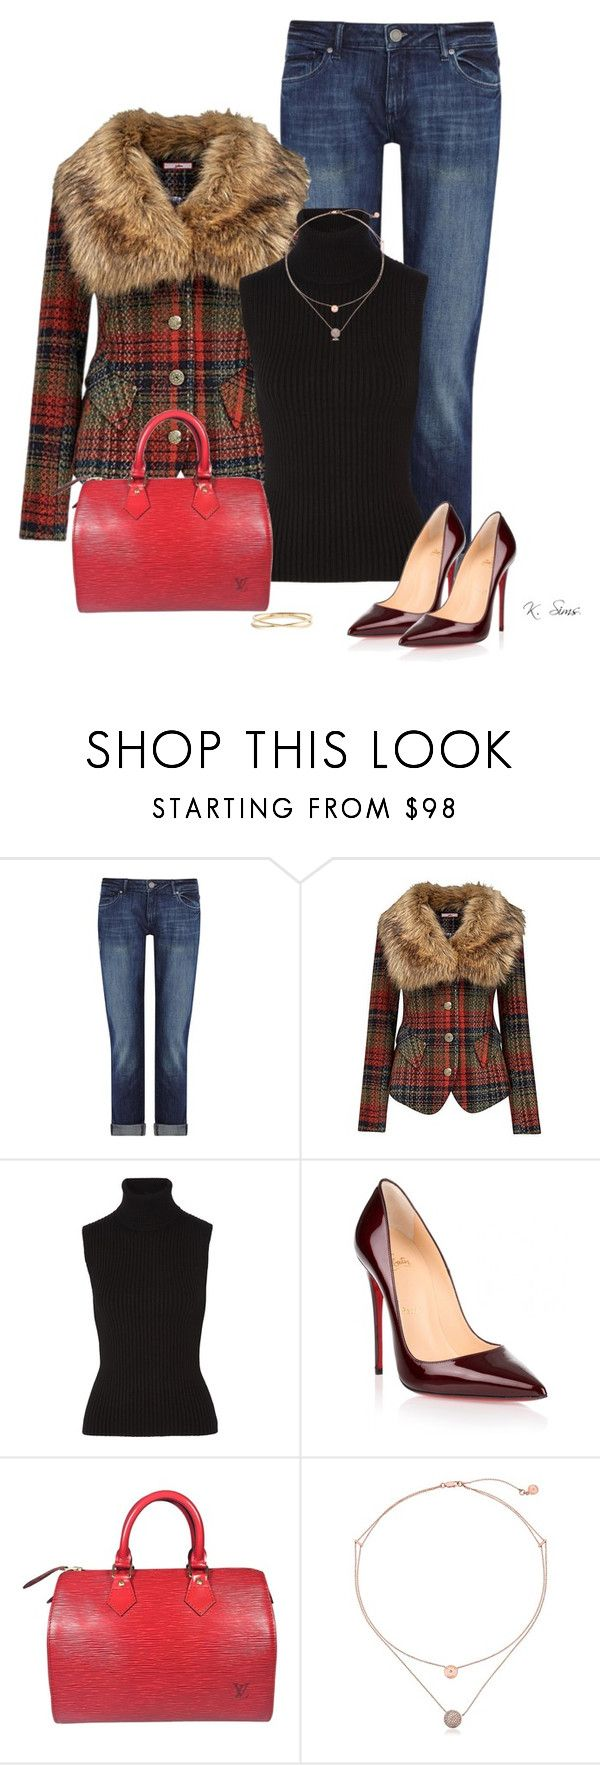 """Oh, the options with this coat!"" by ksims-1 ❤ liked on Polyvore featuring DL1961 Premium Denim, Joe Browns, Michael Kors, Christian Louboutin, Louis Vuitton and Nadri"